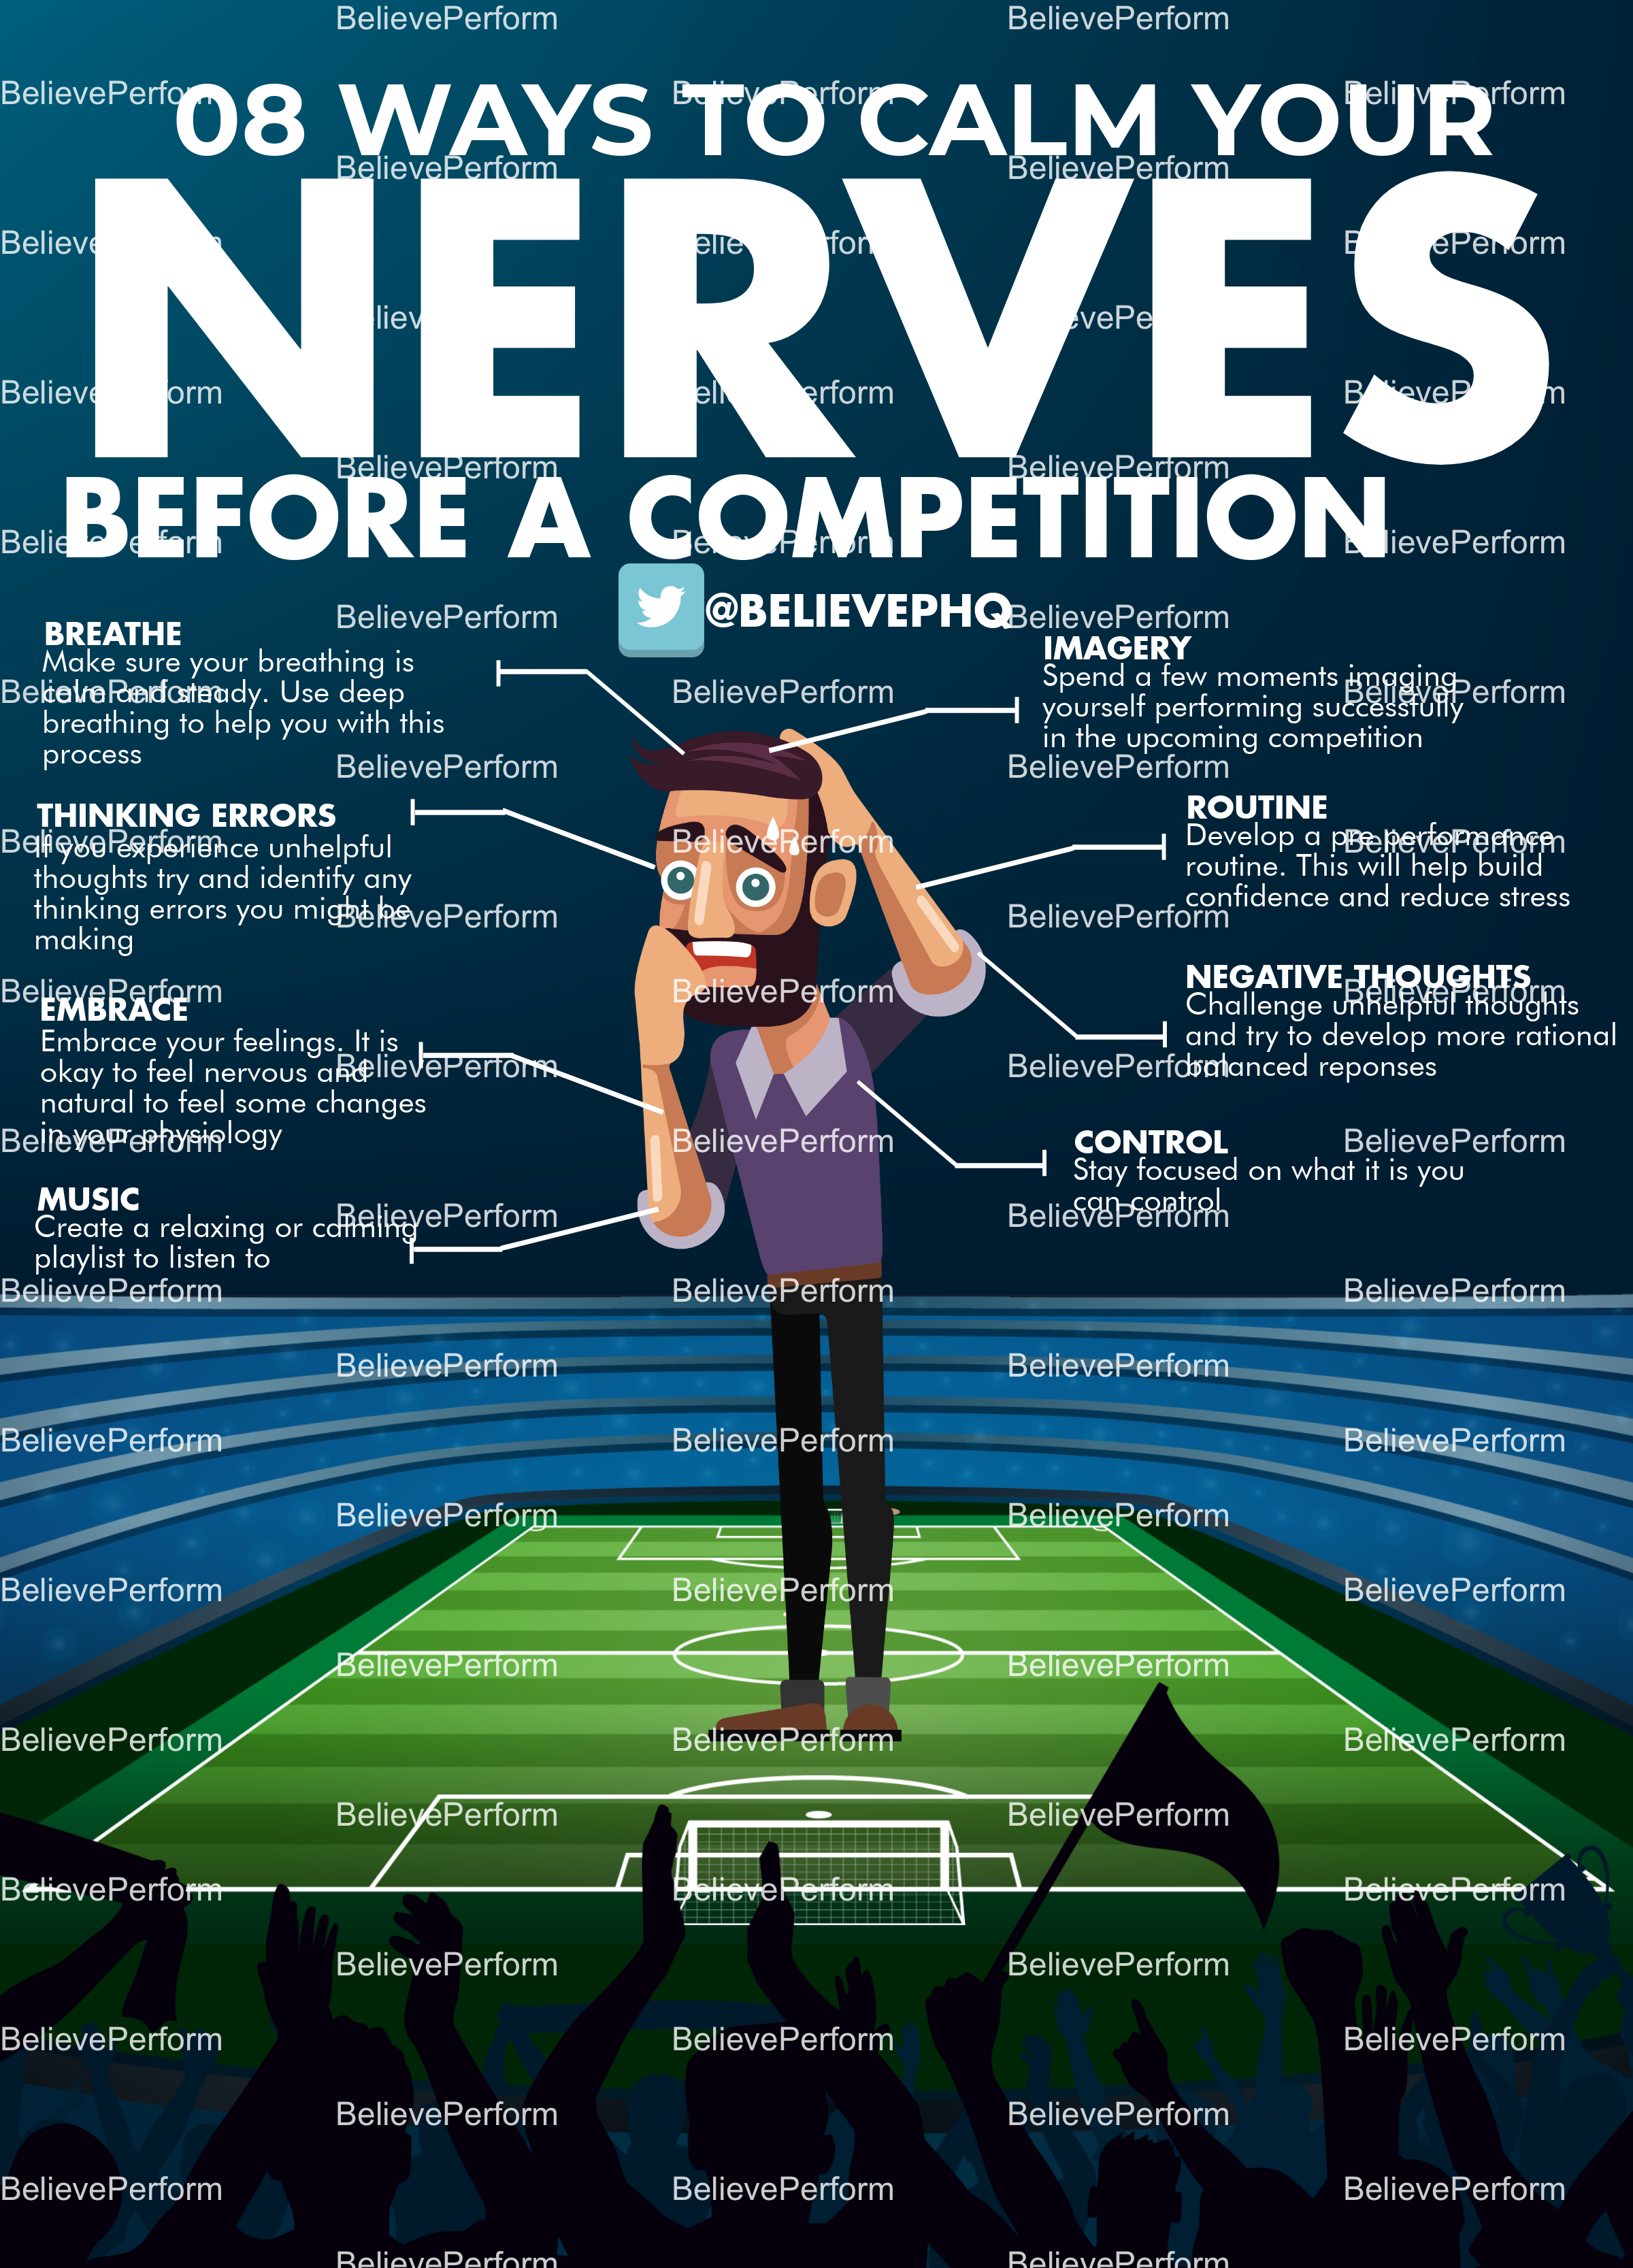 8 ways to calm your nerves before a competition